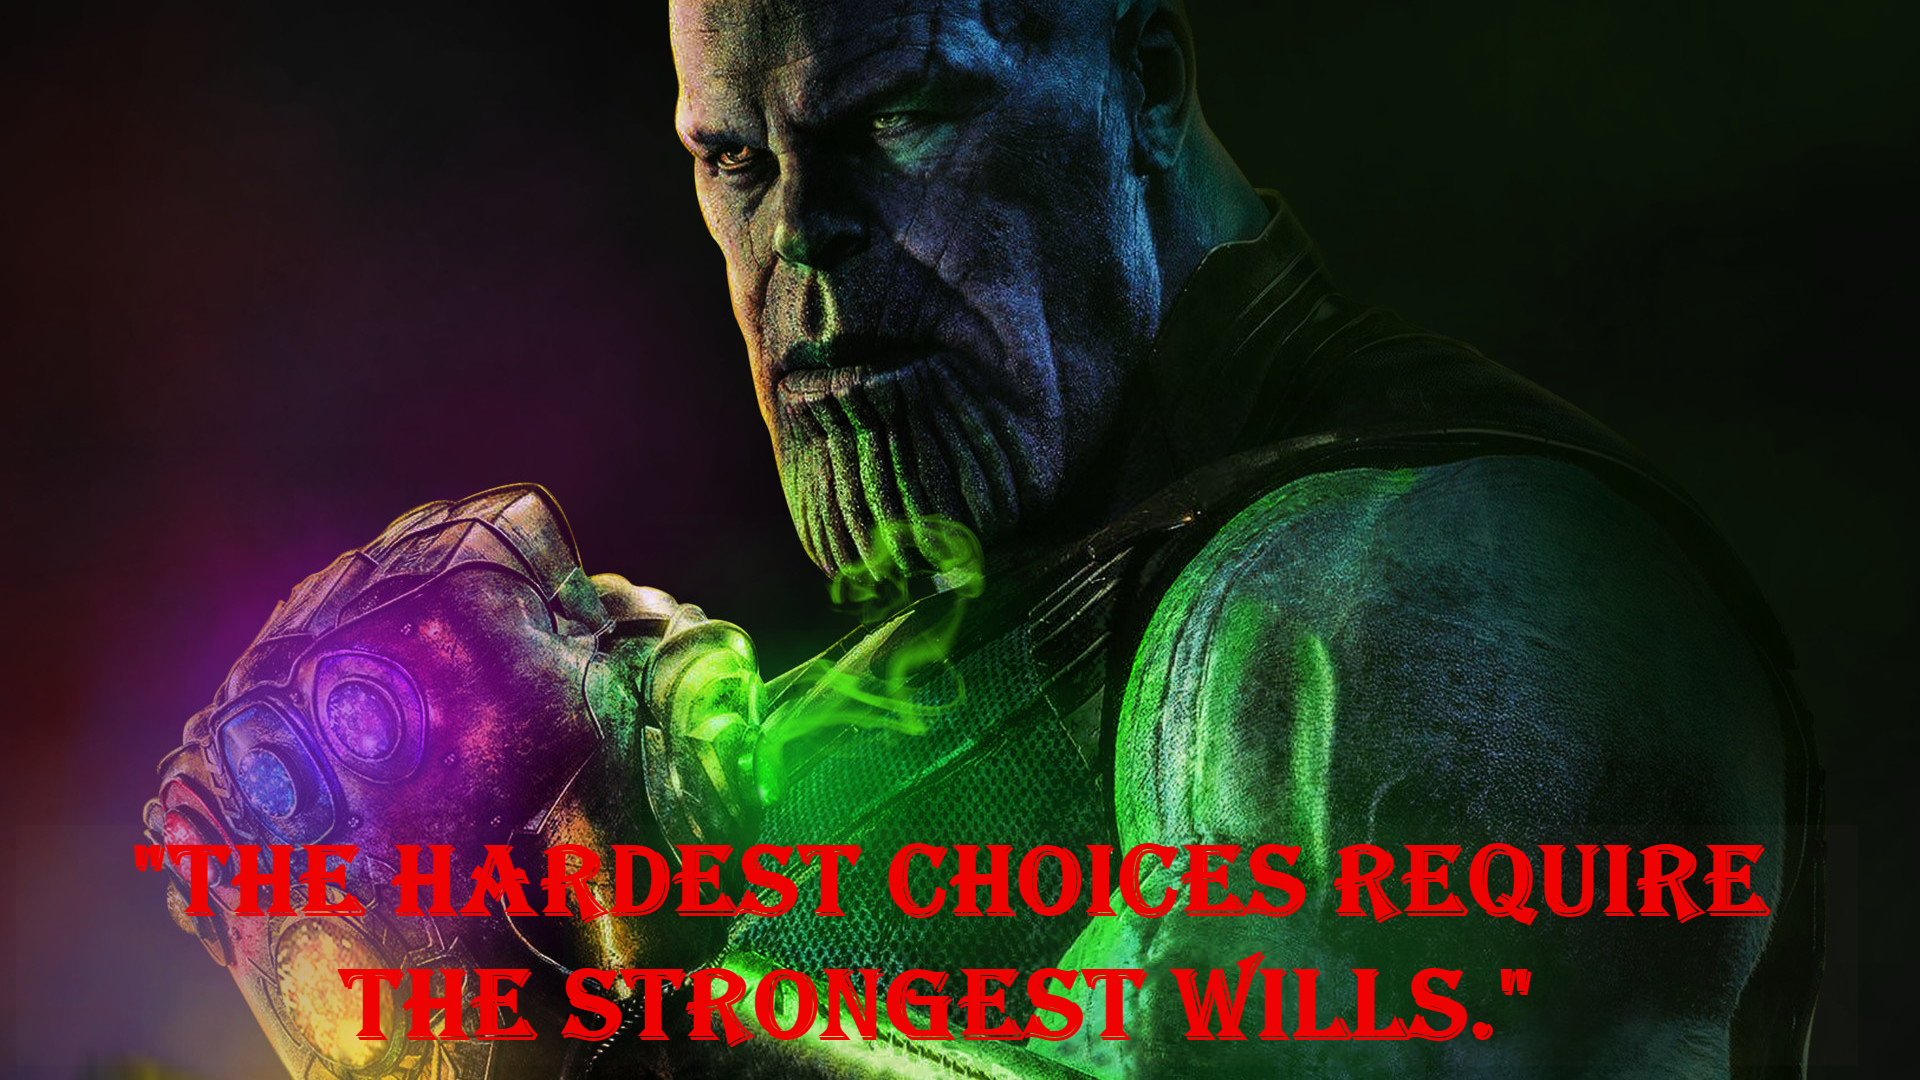 Thanos sayings.